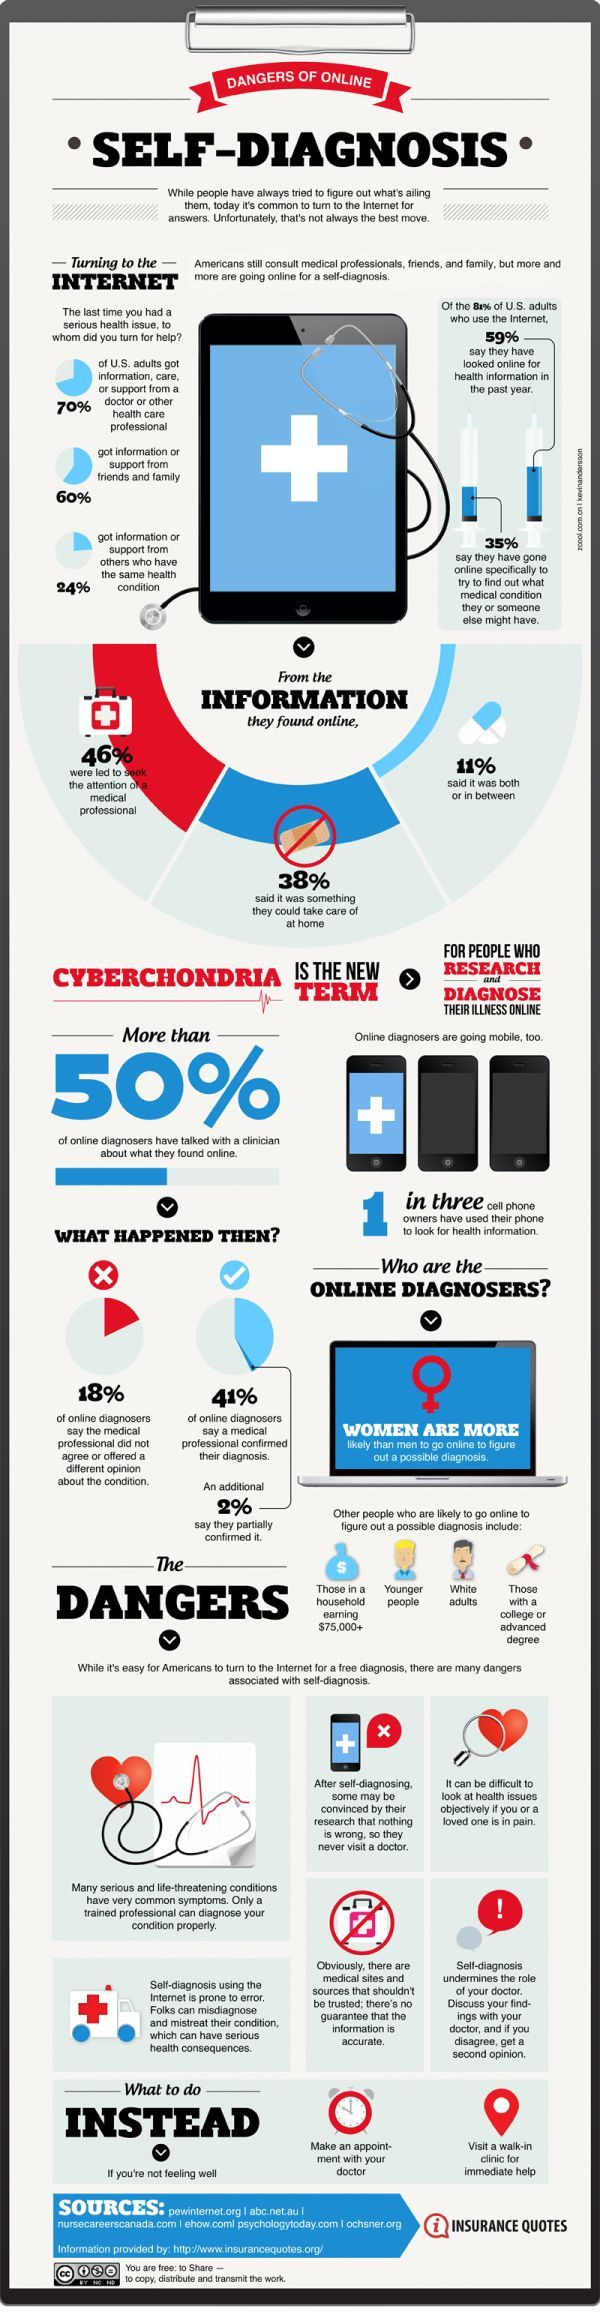 Infographic: The dangers of self-diagnosing online